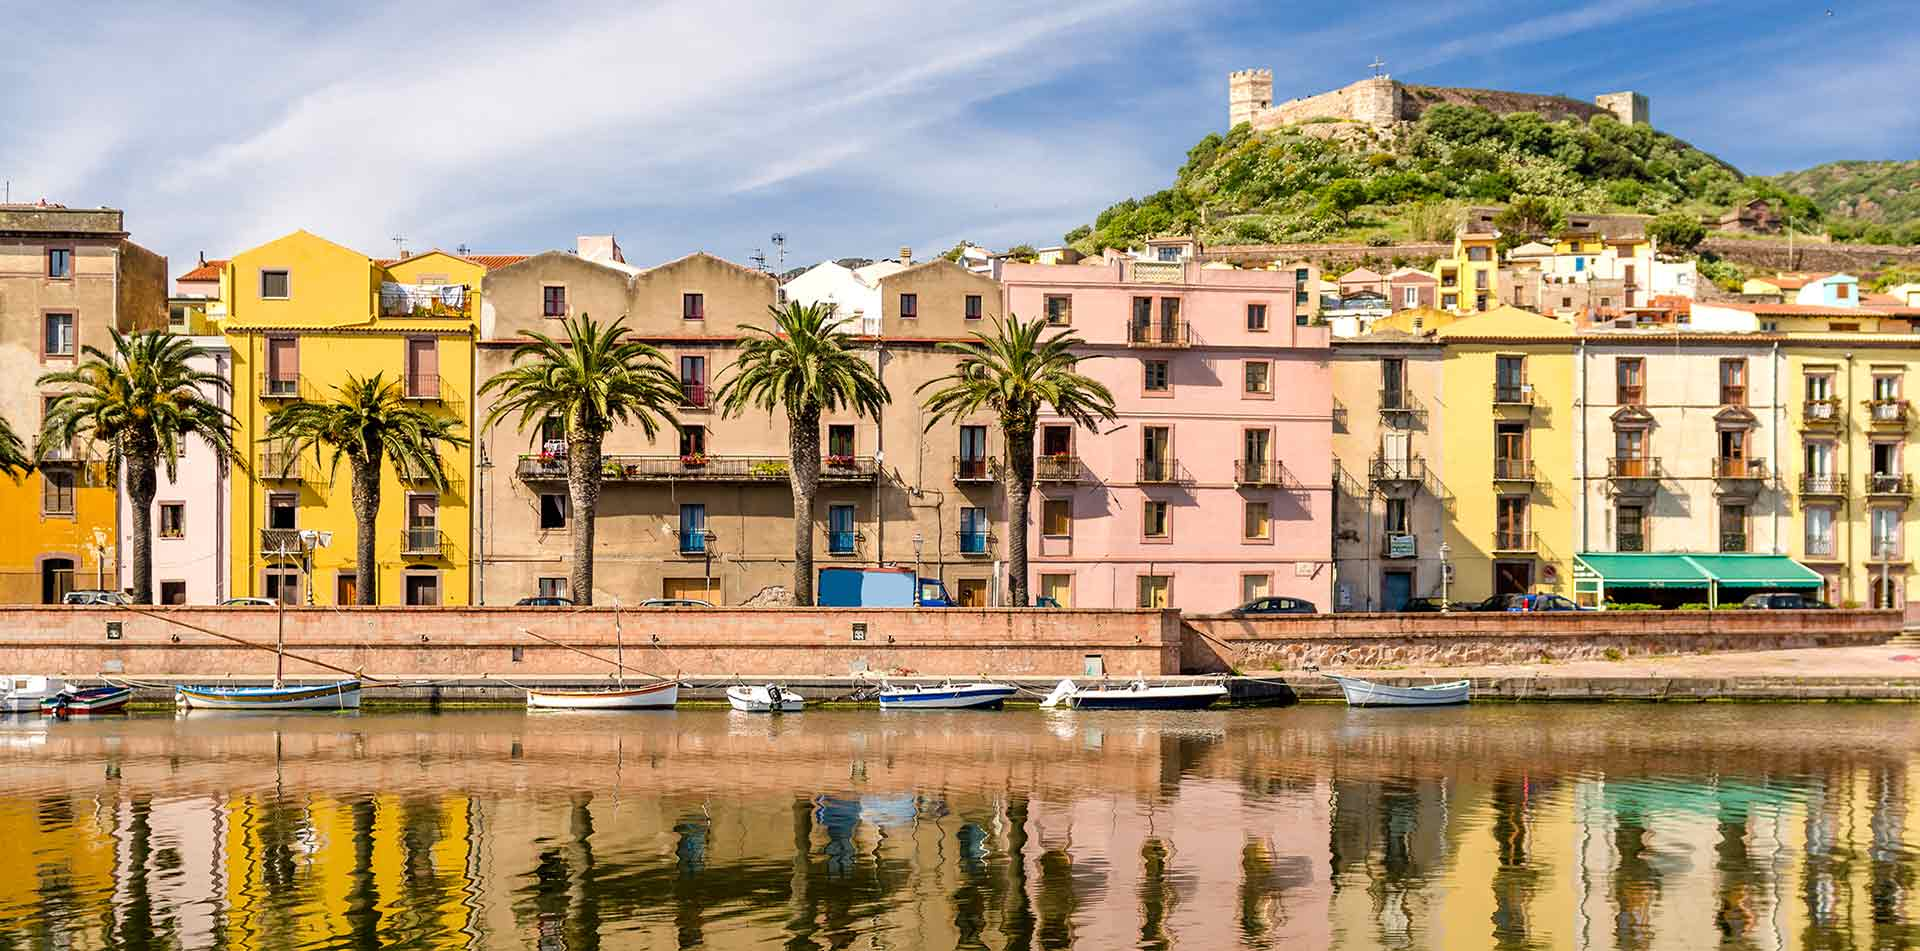 Europe Italy Sardinia colorful seaside buildings in the town of Bosa - luxury vacation destinations